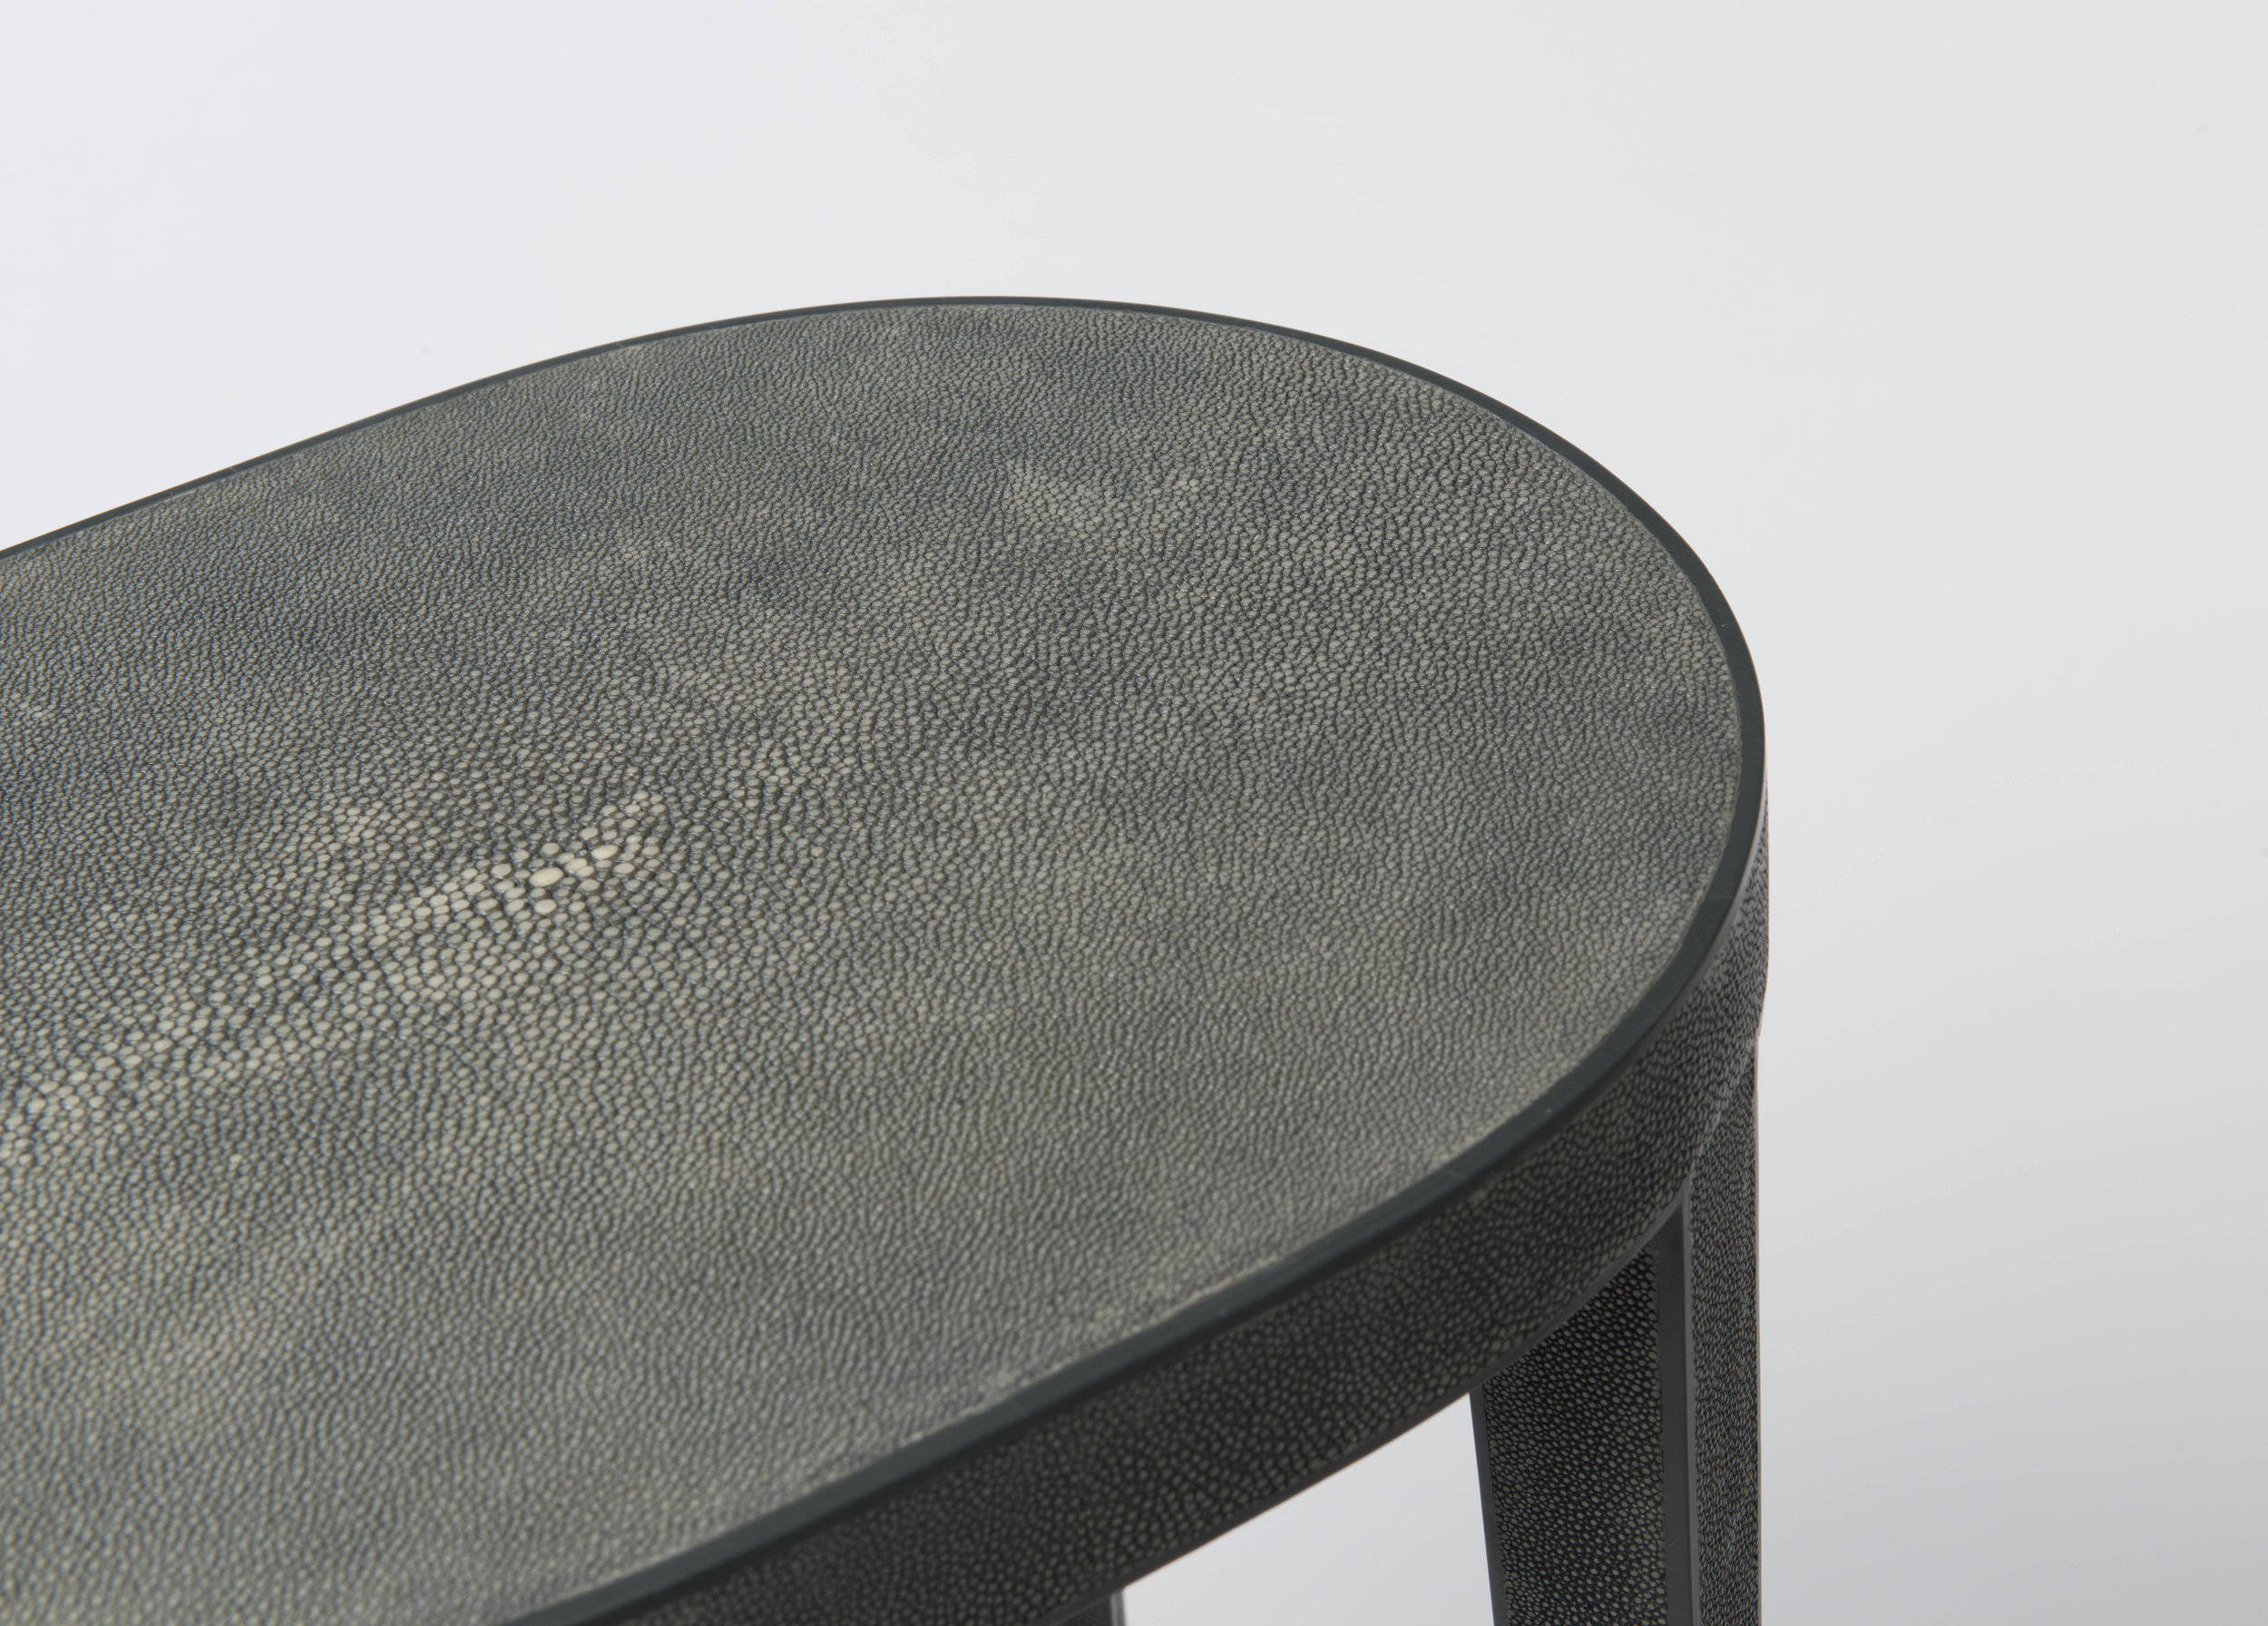 sadie table fog shagreen-012.jpg